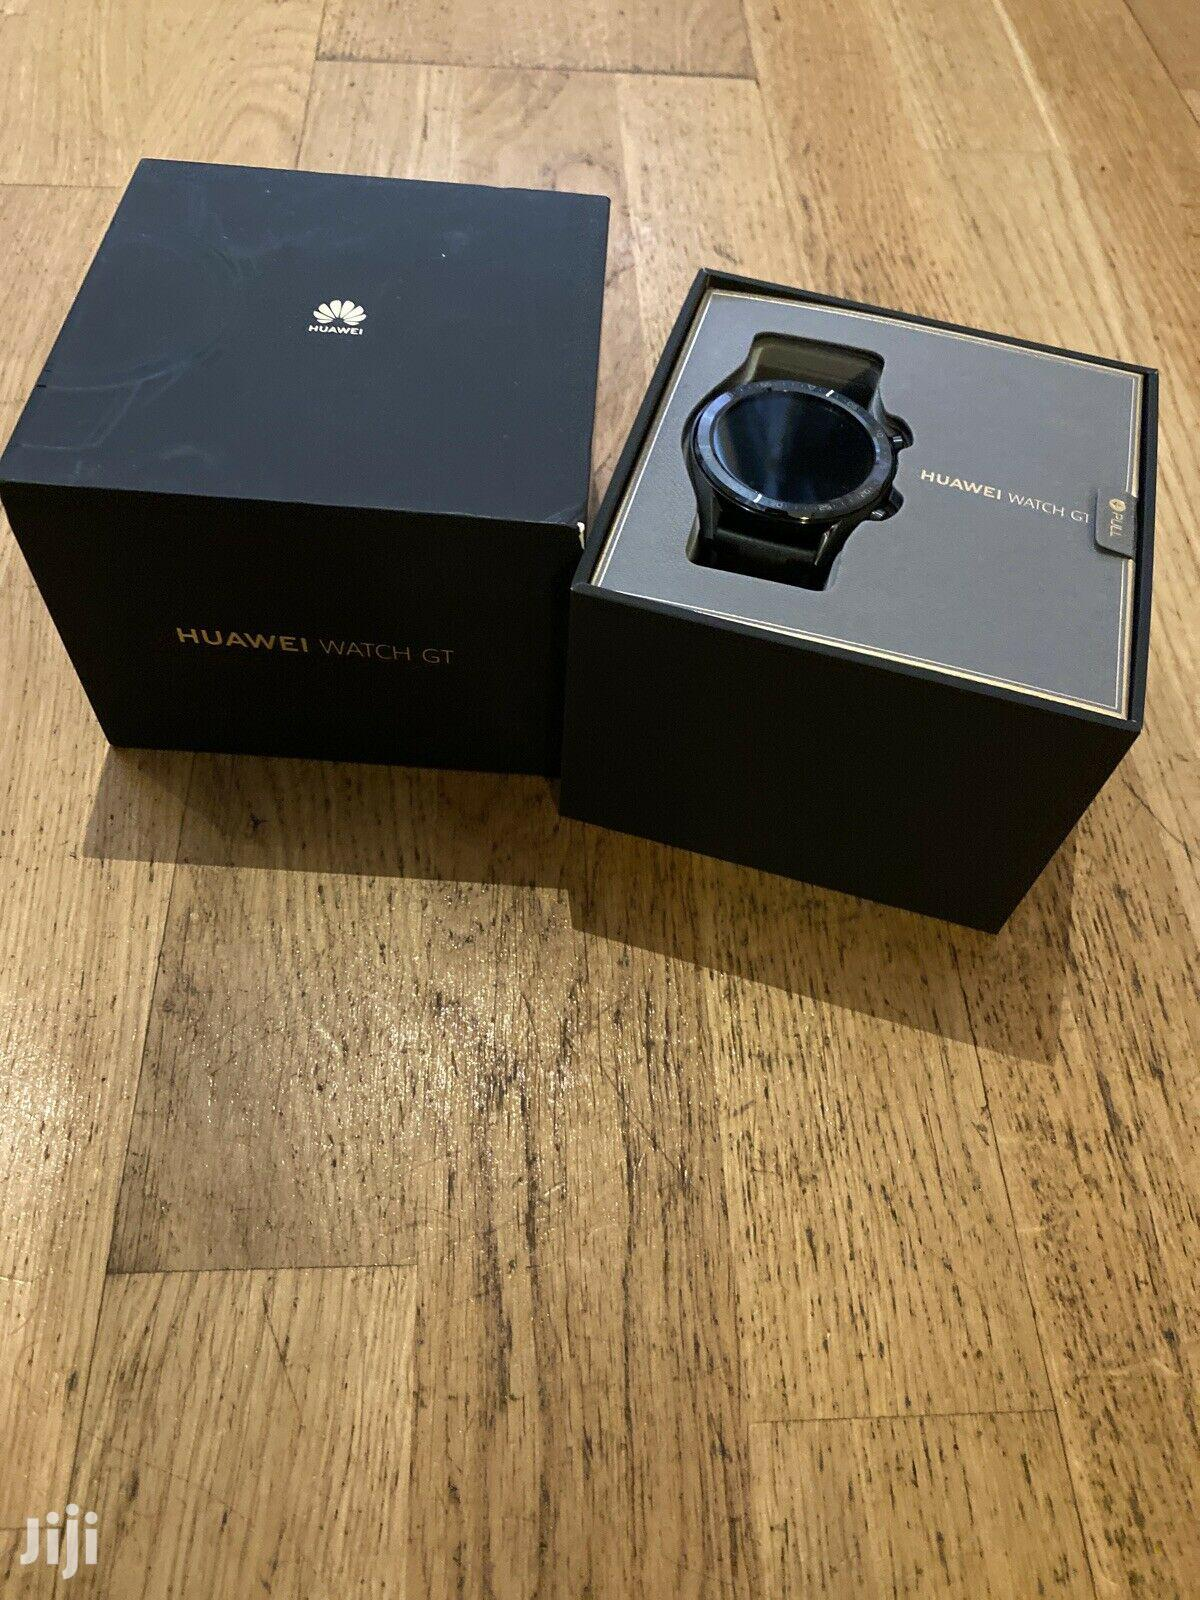 Huawei Watch Gt | Smart Watches & Trackers for sale in Accra Metropolitan, Greater Accra, Ghana